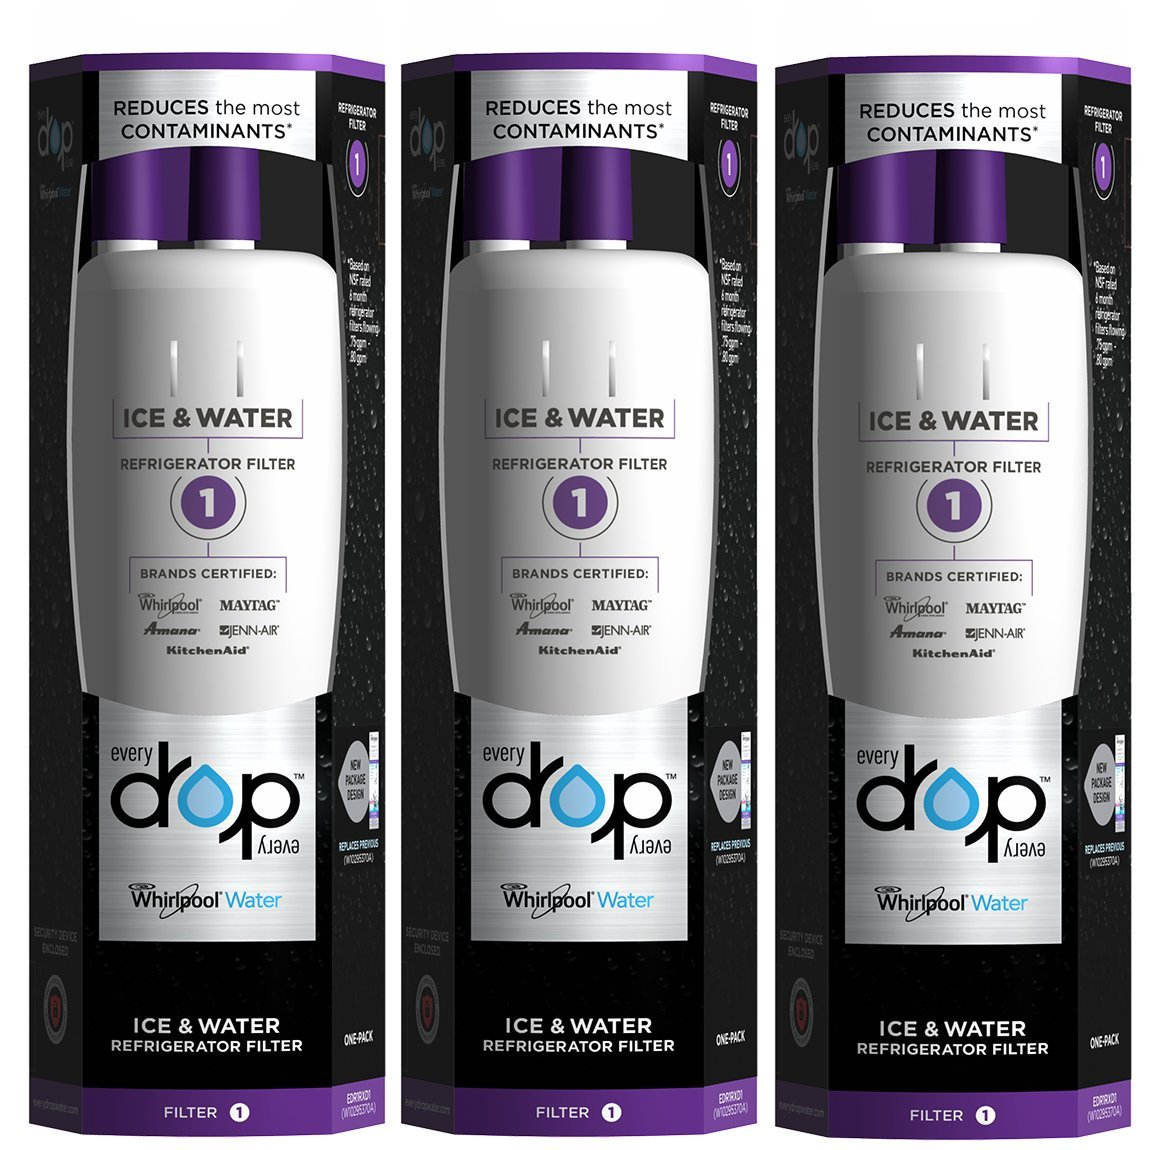 amazoncom everydrop by whirlpool water filter 1 pack of 3 home improvement